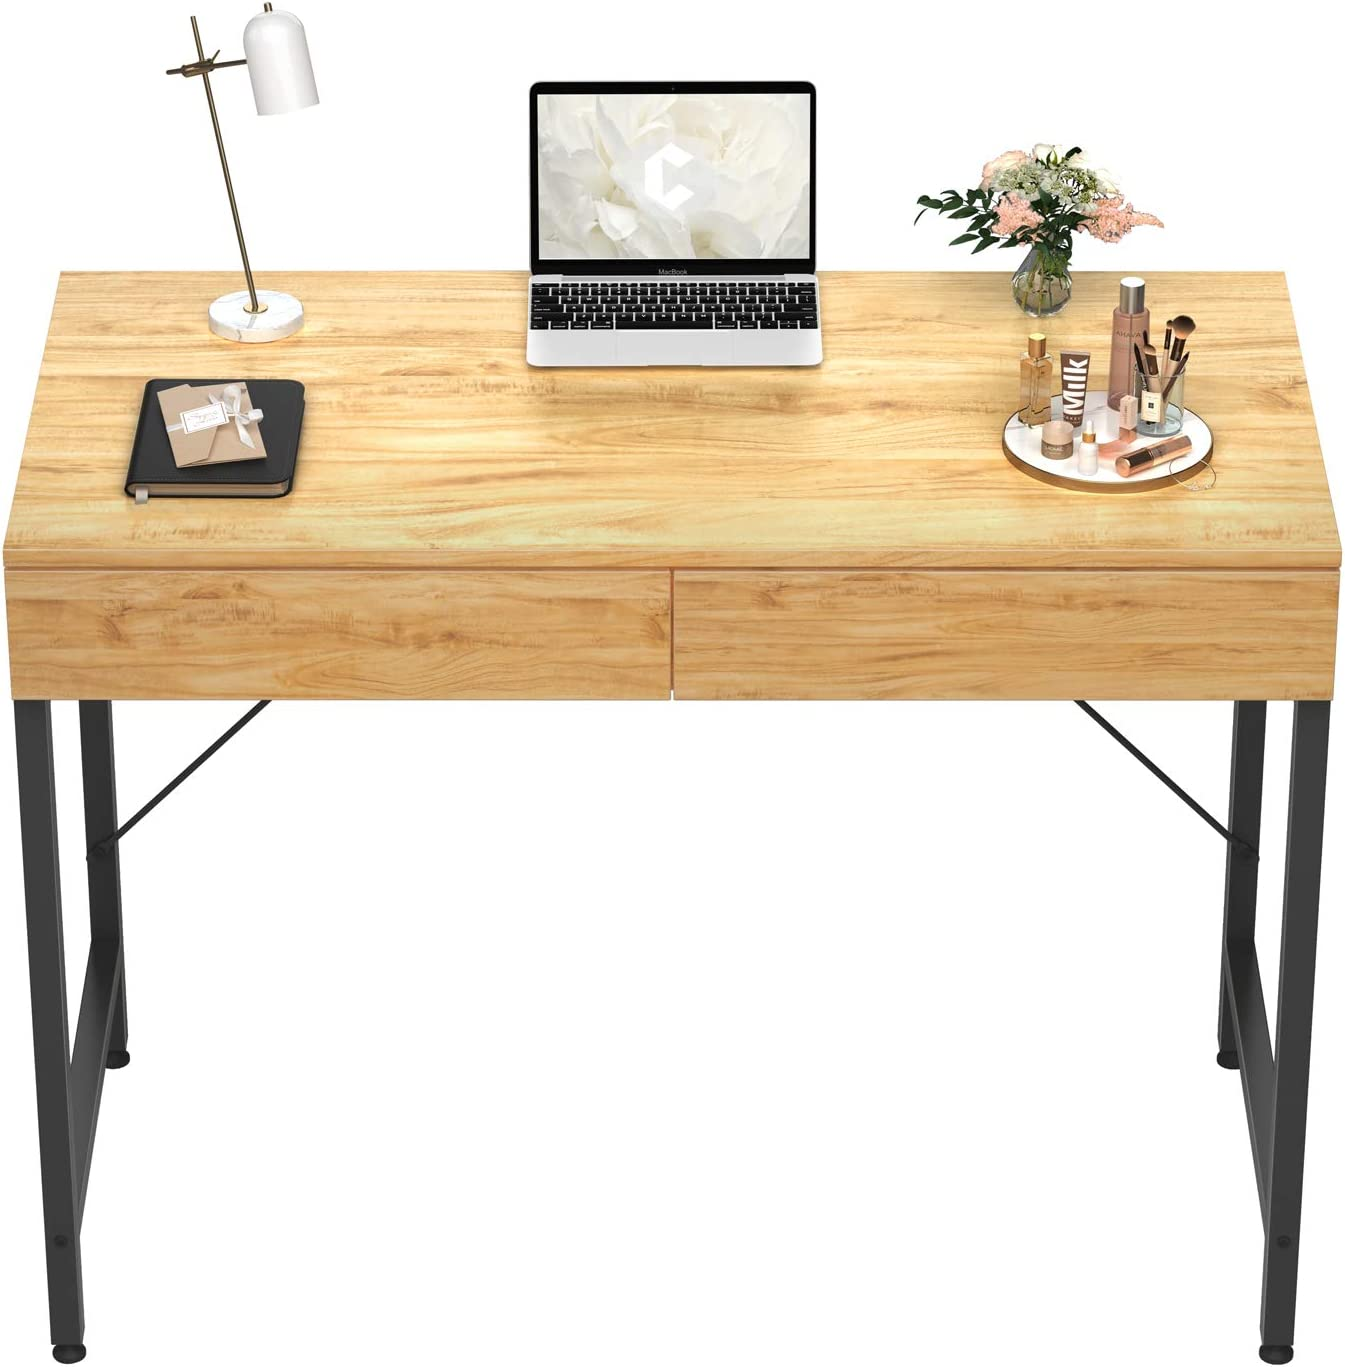 CubiCubi Computer Small Desk, 40 inches with 2 Storage Drawers for Home Office Writing Desk, Makeup Vanity Console Table, Walnut